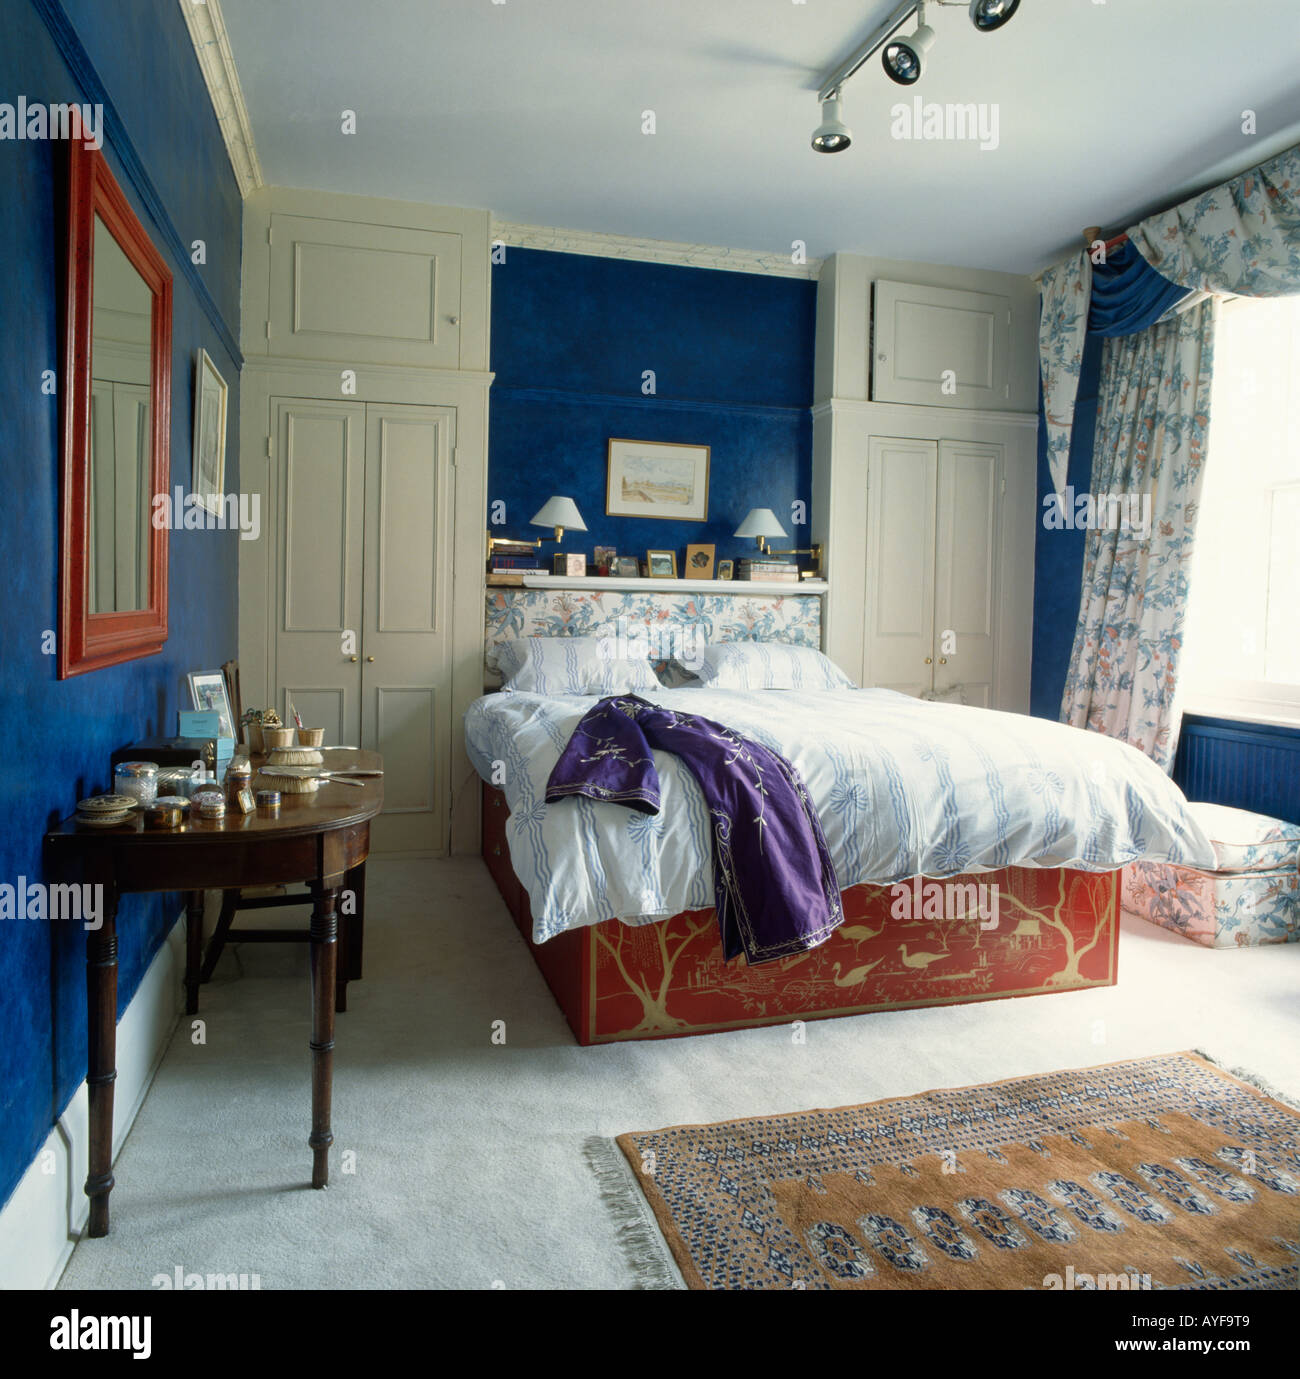 Blue Bedroom With Grey Carpet And Wall Cupboards Stock Photo Alamy